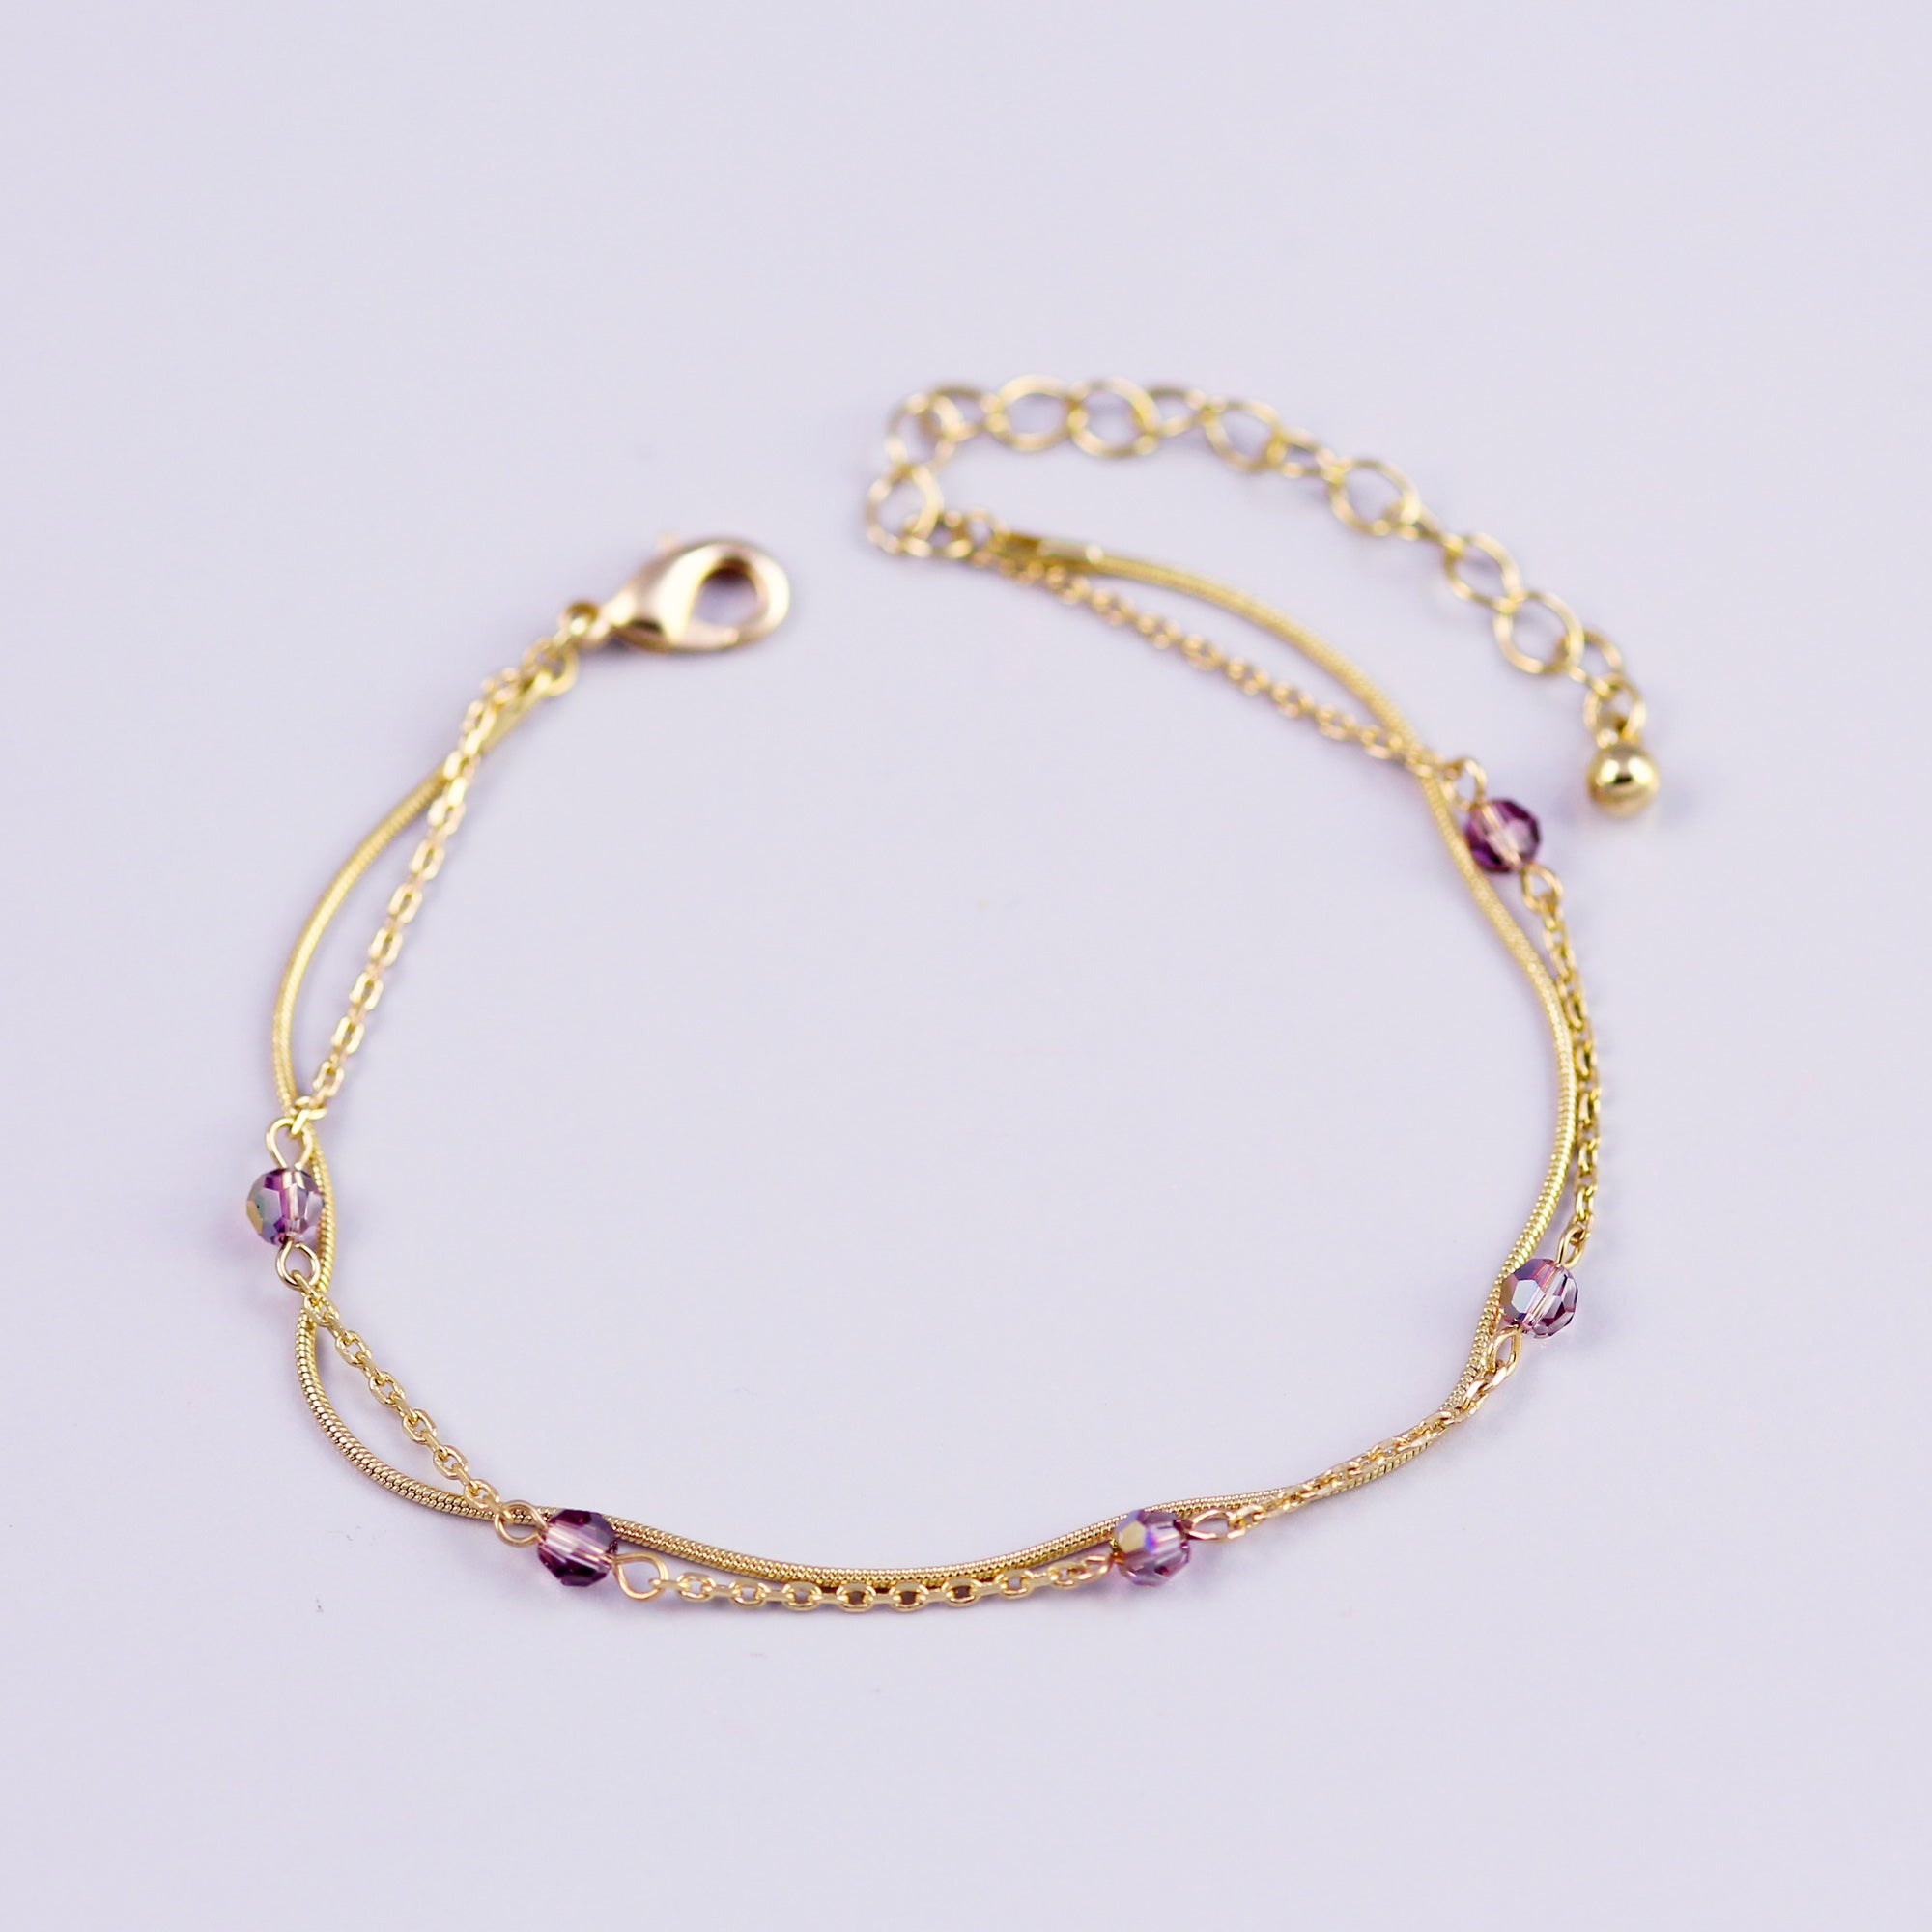 Delicate Gold Bracelet with Light Amethyst Crystals